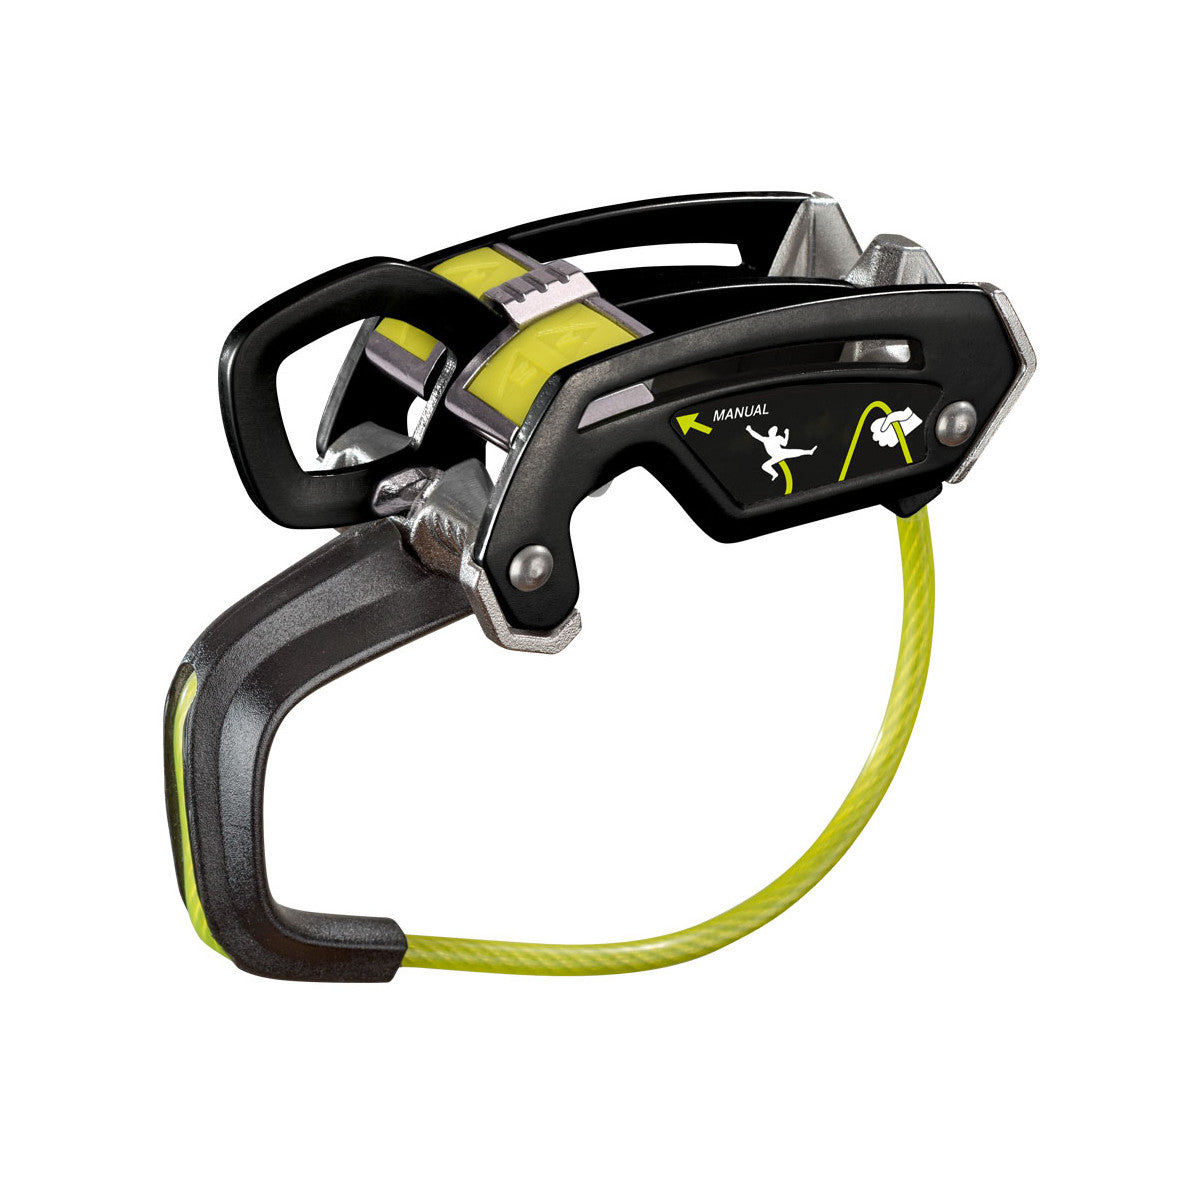 Edelrid Giga Jul belay device, shown side on in Black colour